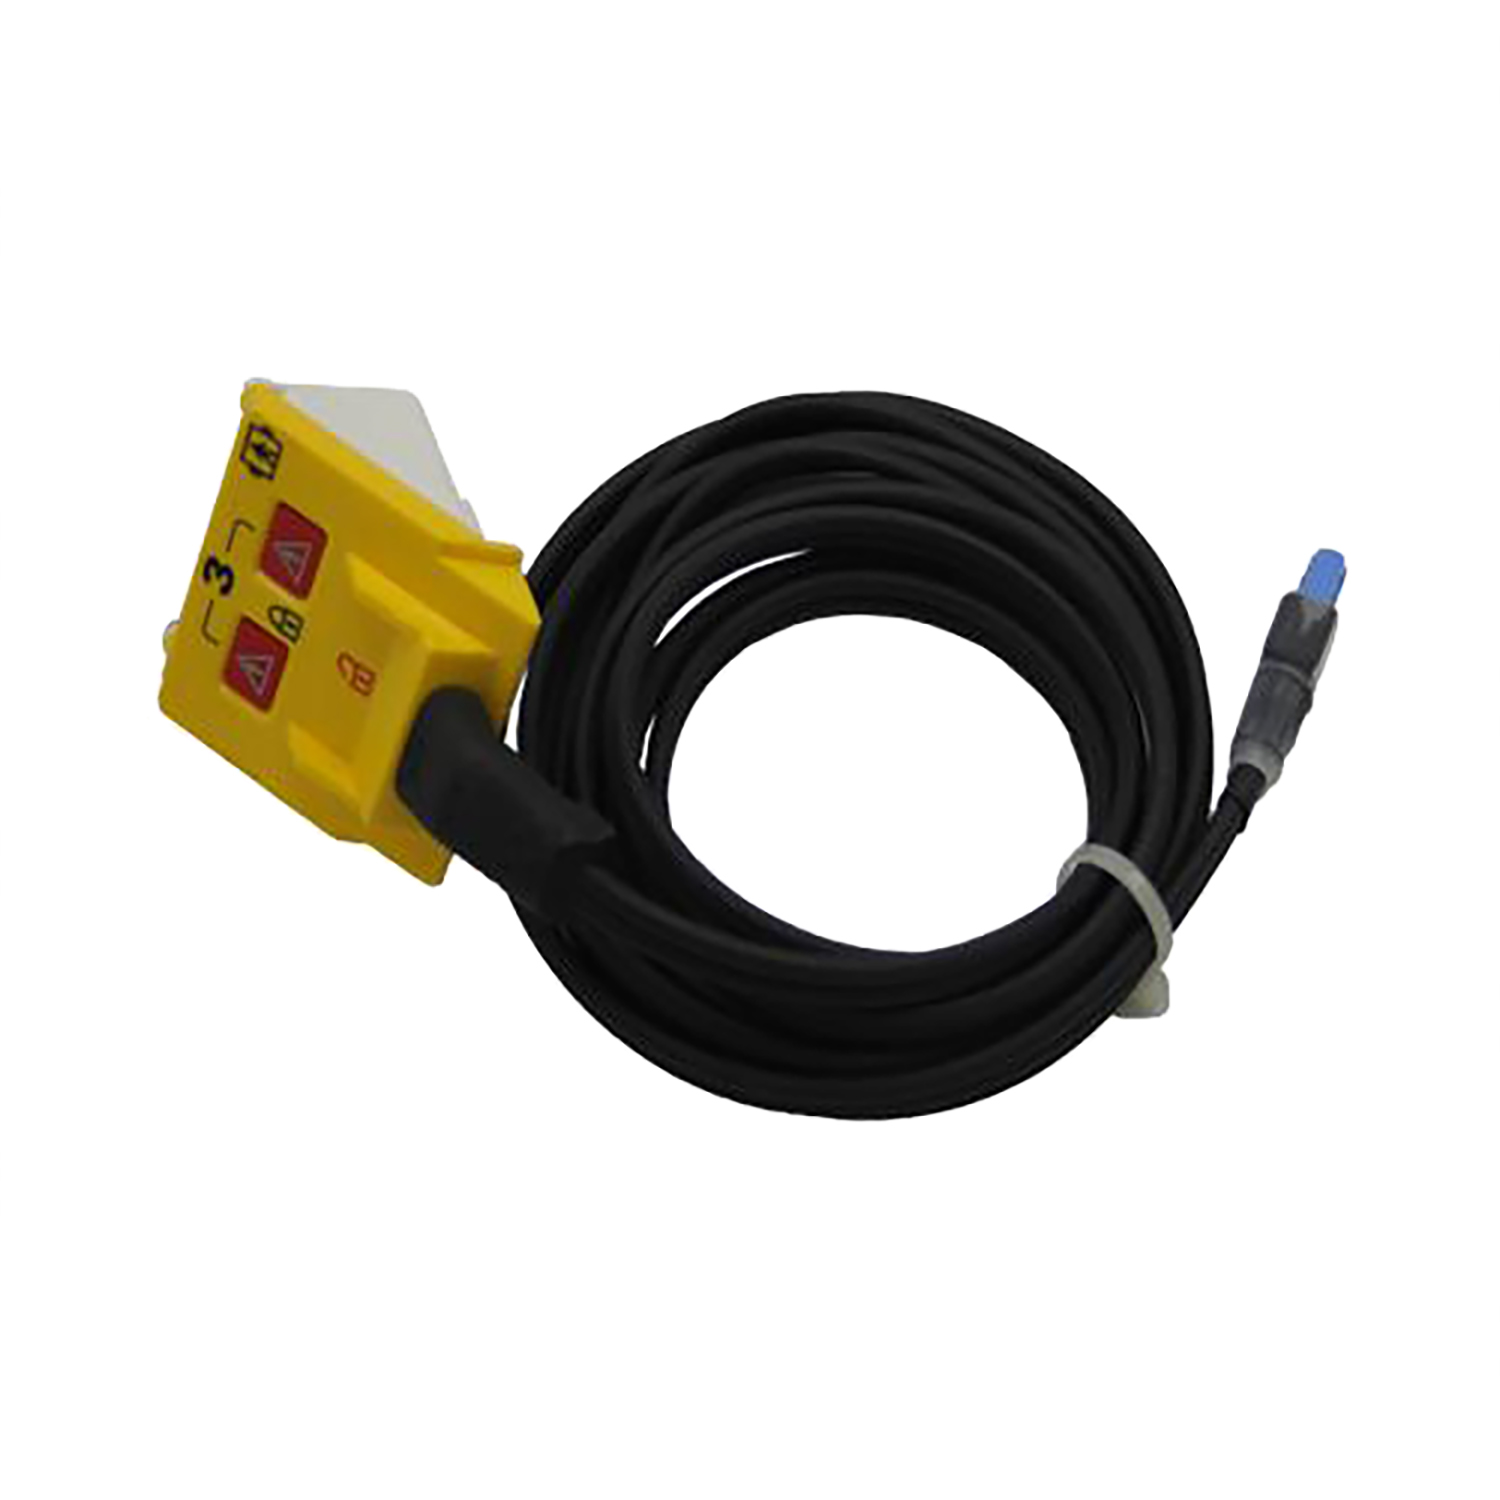 Pacing Cable for Codemaster XL